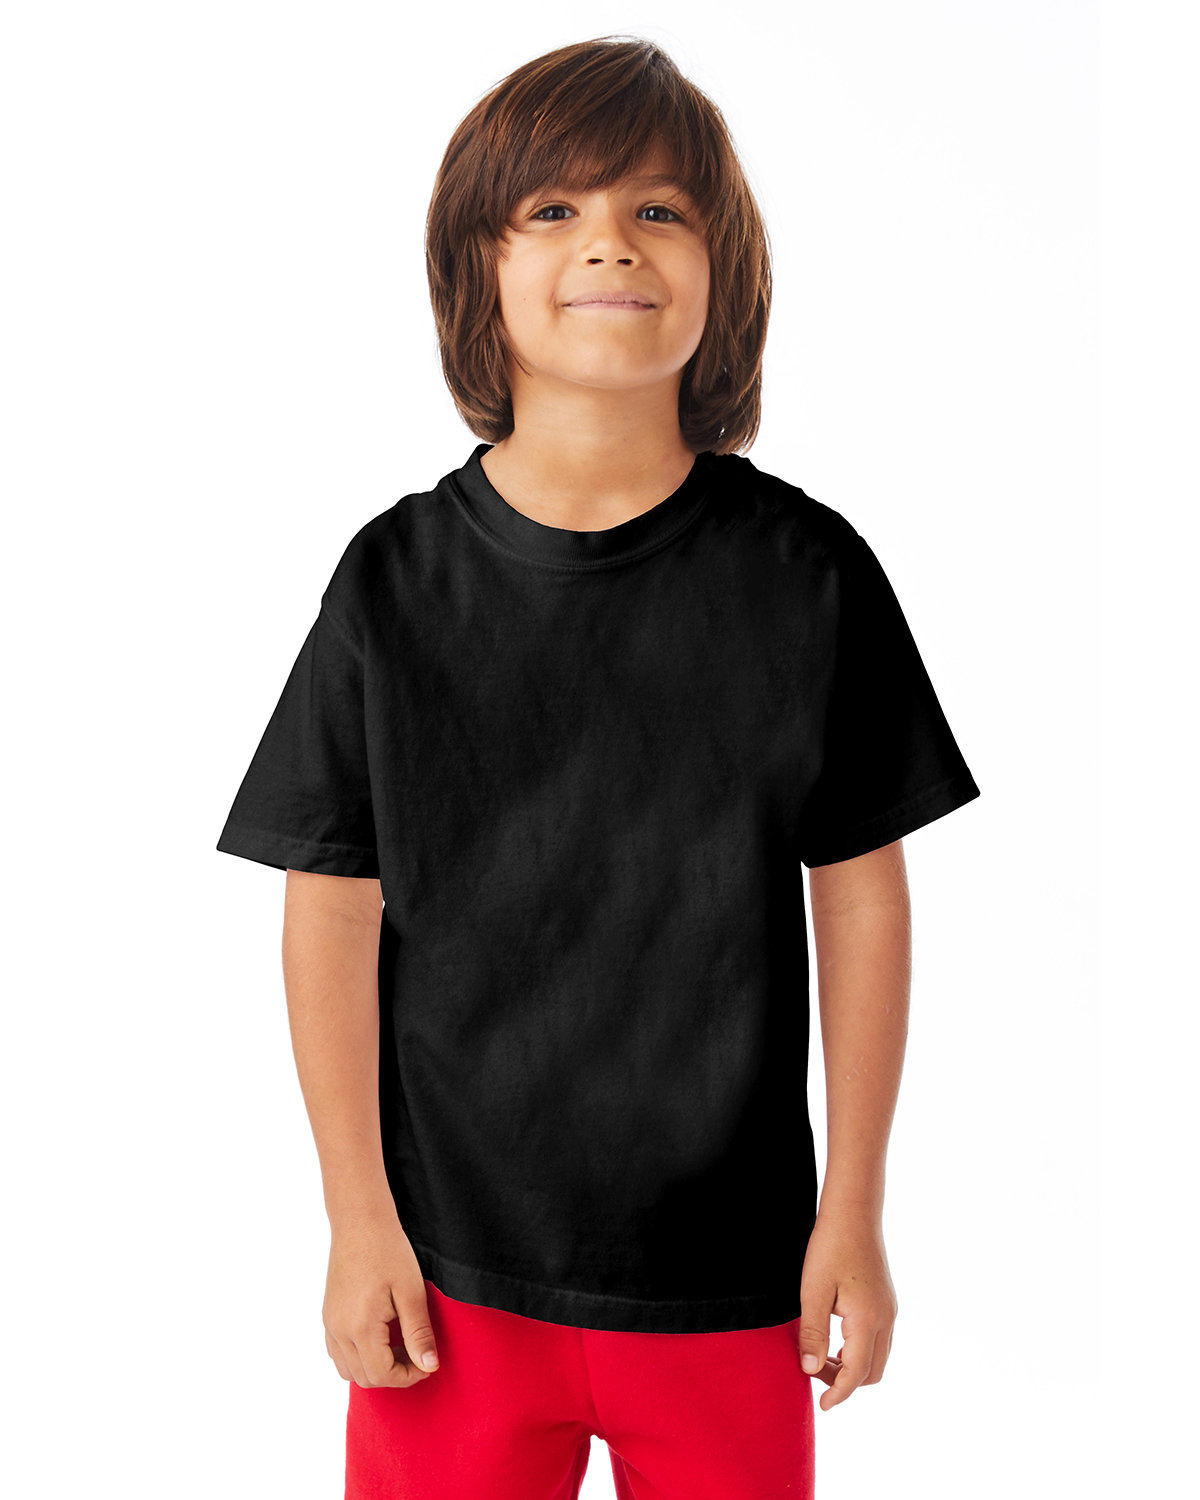 ComfortWash by Hanes Youth Garment-Dyed T-Shirt BLACK